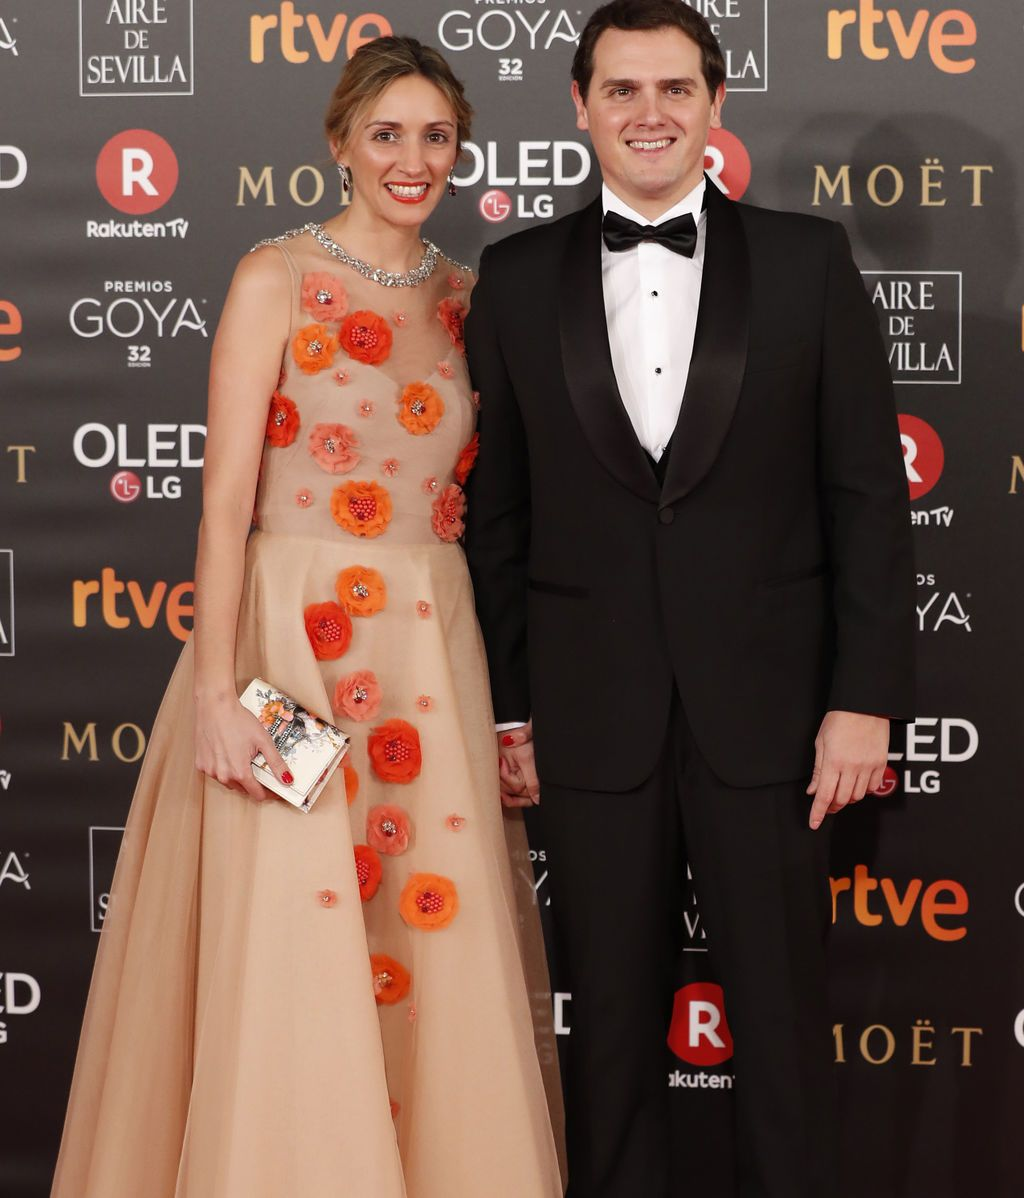 Albert Rivera y Beatriz Tajuelo